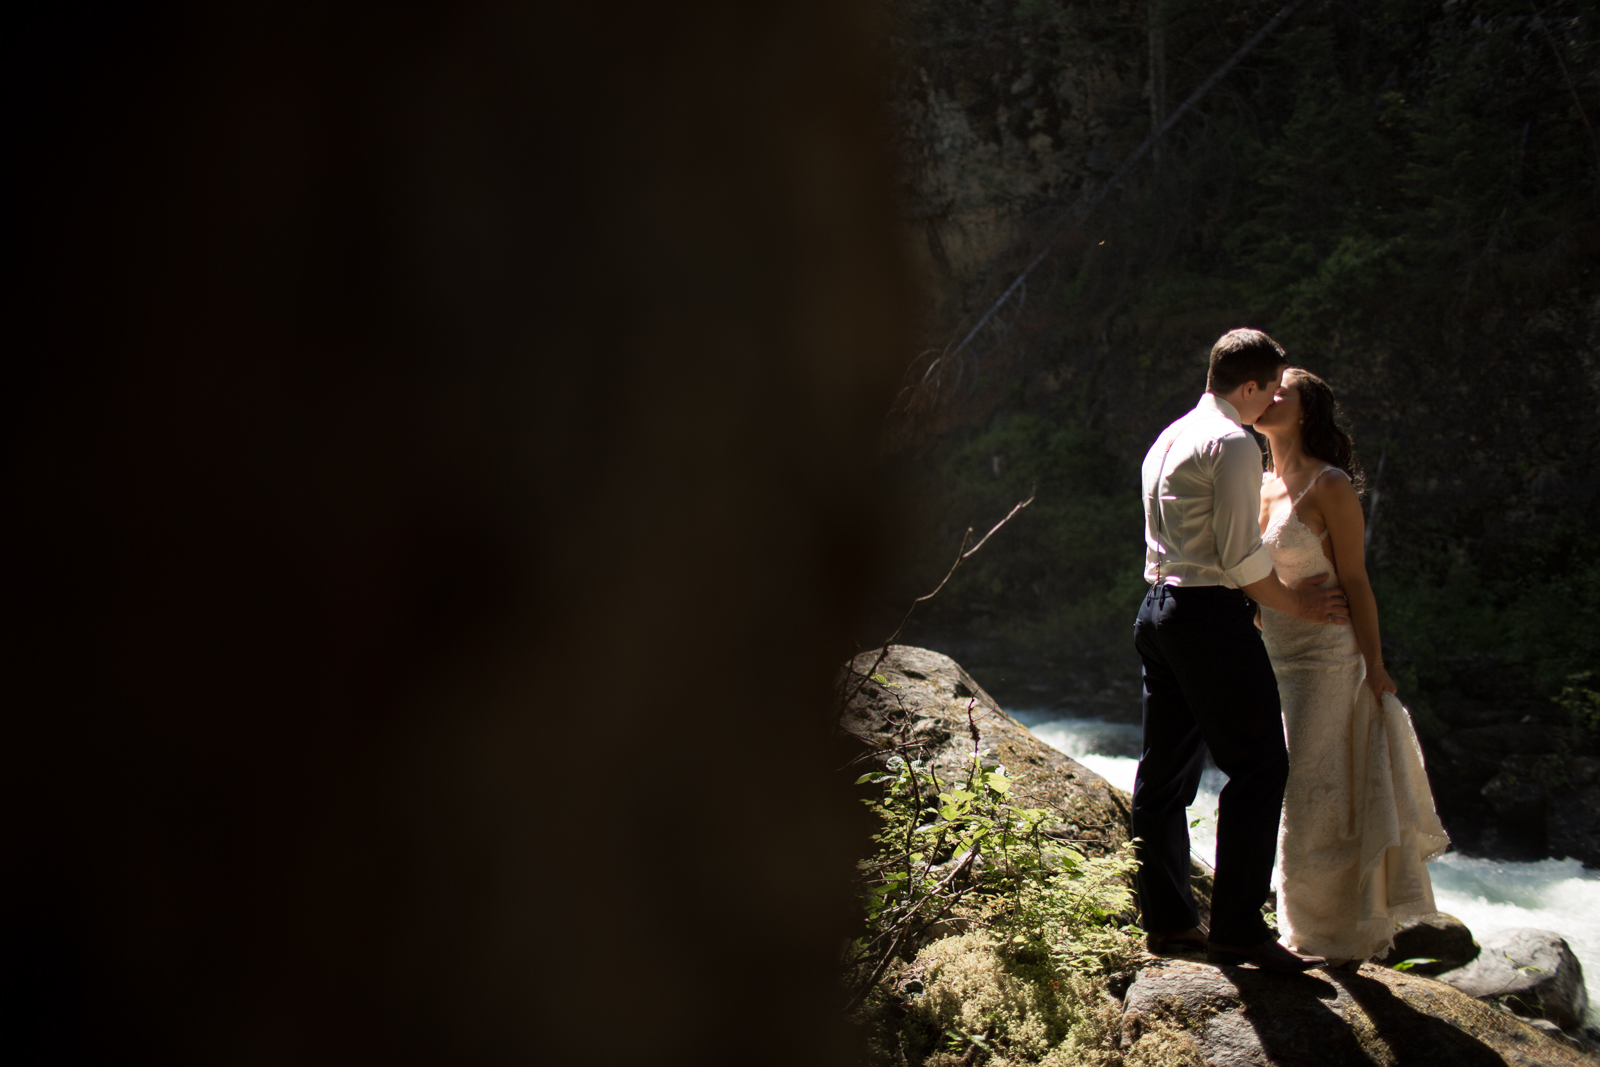 43Andrew_Pavlidis_Photography_Jess_and_Tristan_Revelstoke_Elopement_Calgary_Wedding_Photographer-8173